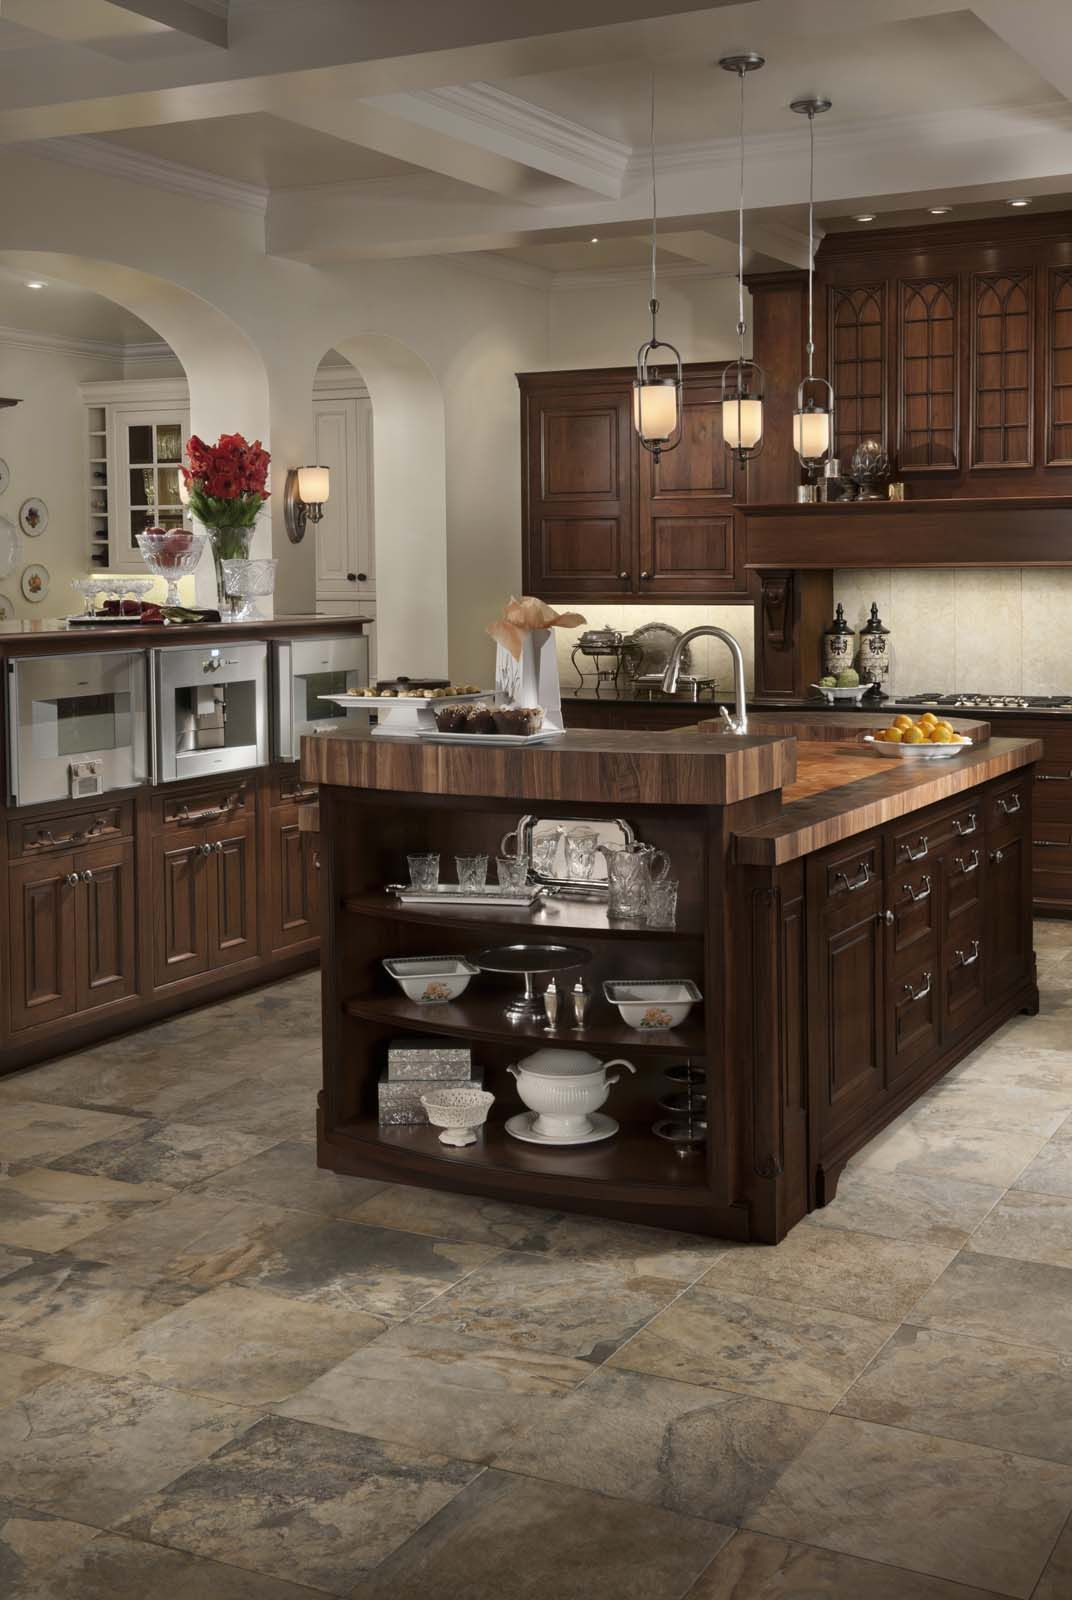 Ordinaire Kitchen Gallery | View Examples Of Our Cabinets | David Hecht Kitchens